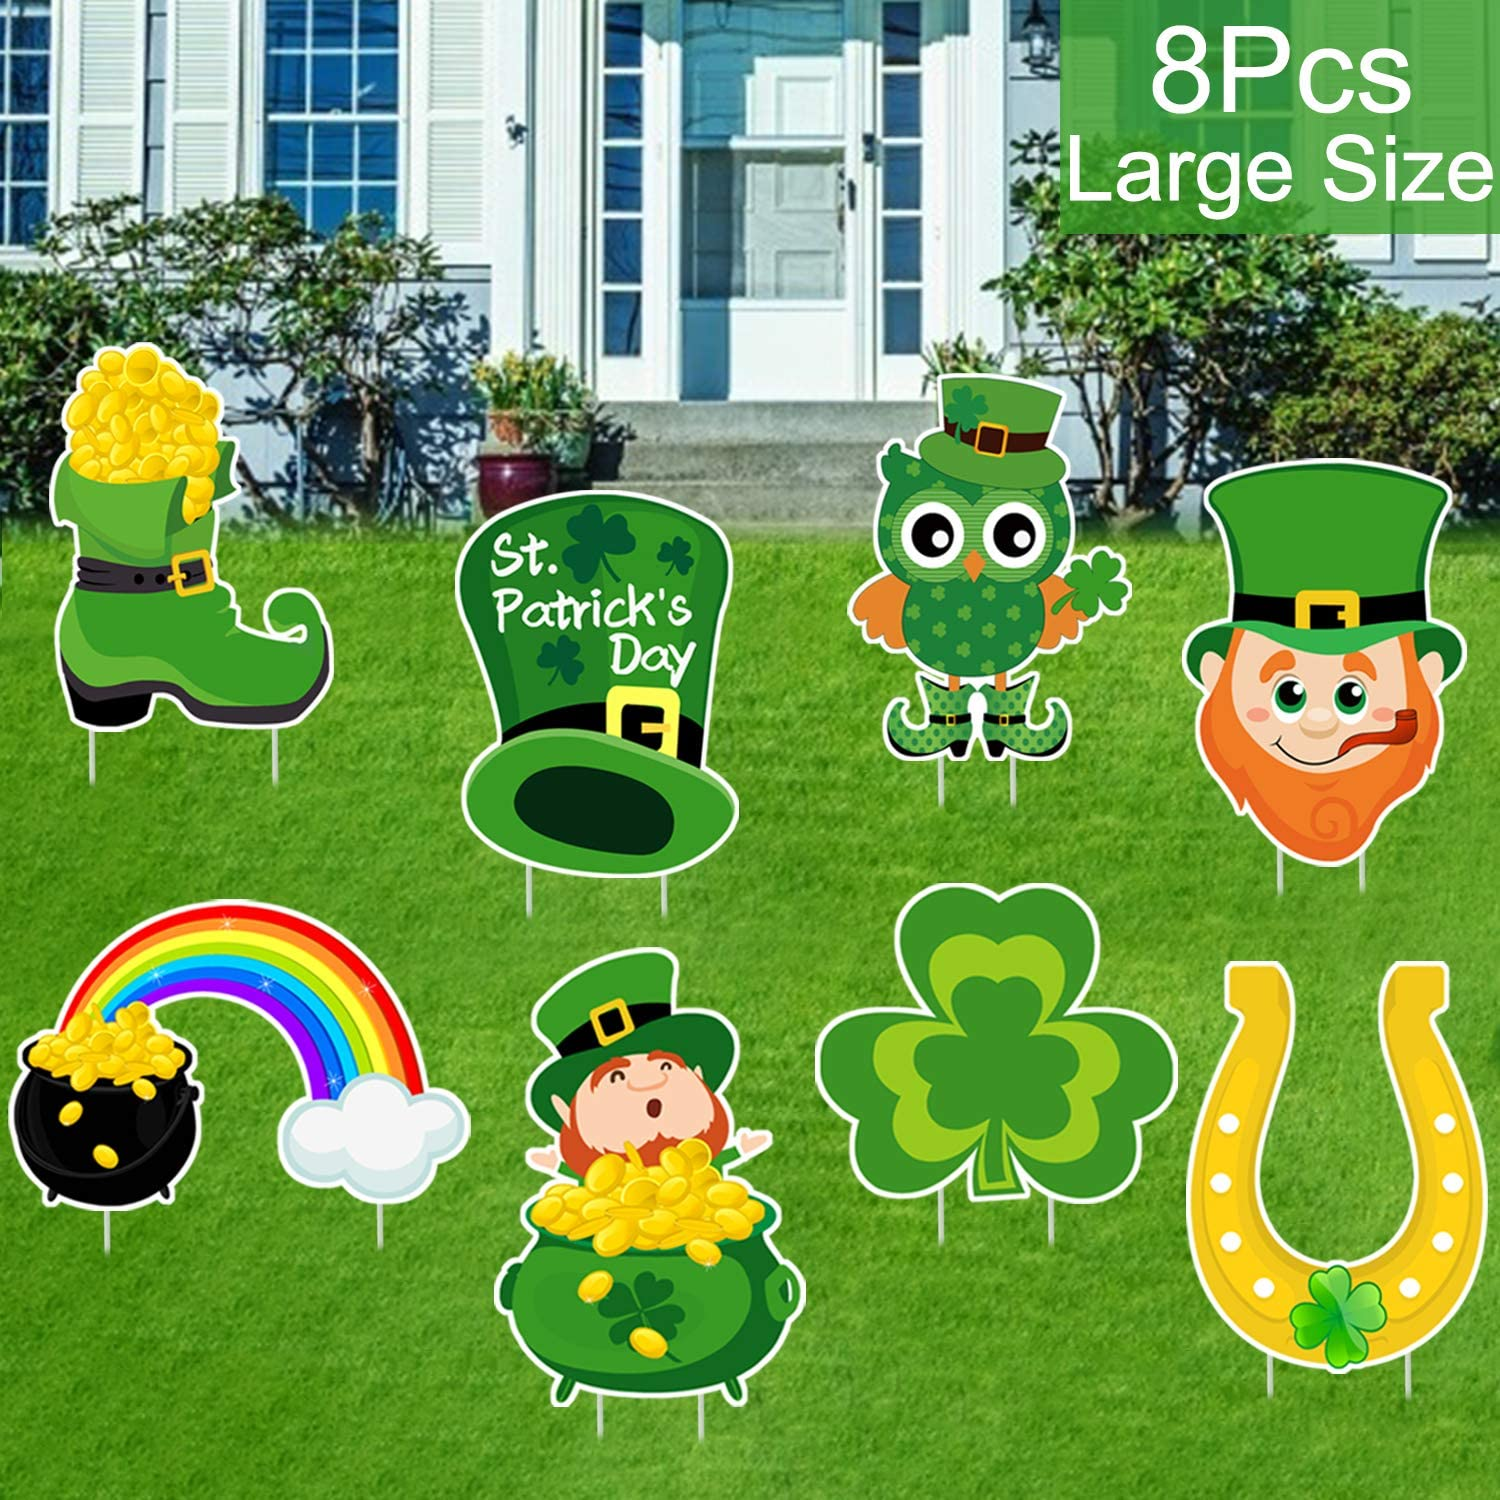 8 PCS St. Patrick's Day Yard Sign Outdoor Lawn Decorations | St. Patrick's Day Decorations Outdoor| Irish Leprechaun Horseshoe Shamrock Yard Sign with Stakes| Saint Patty's Day Outdoor Decorations